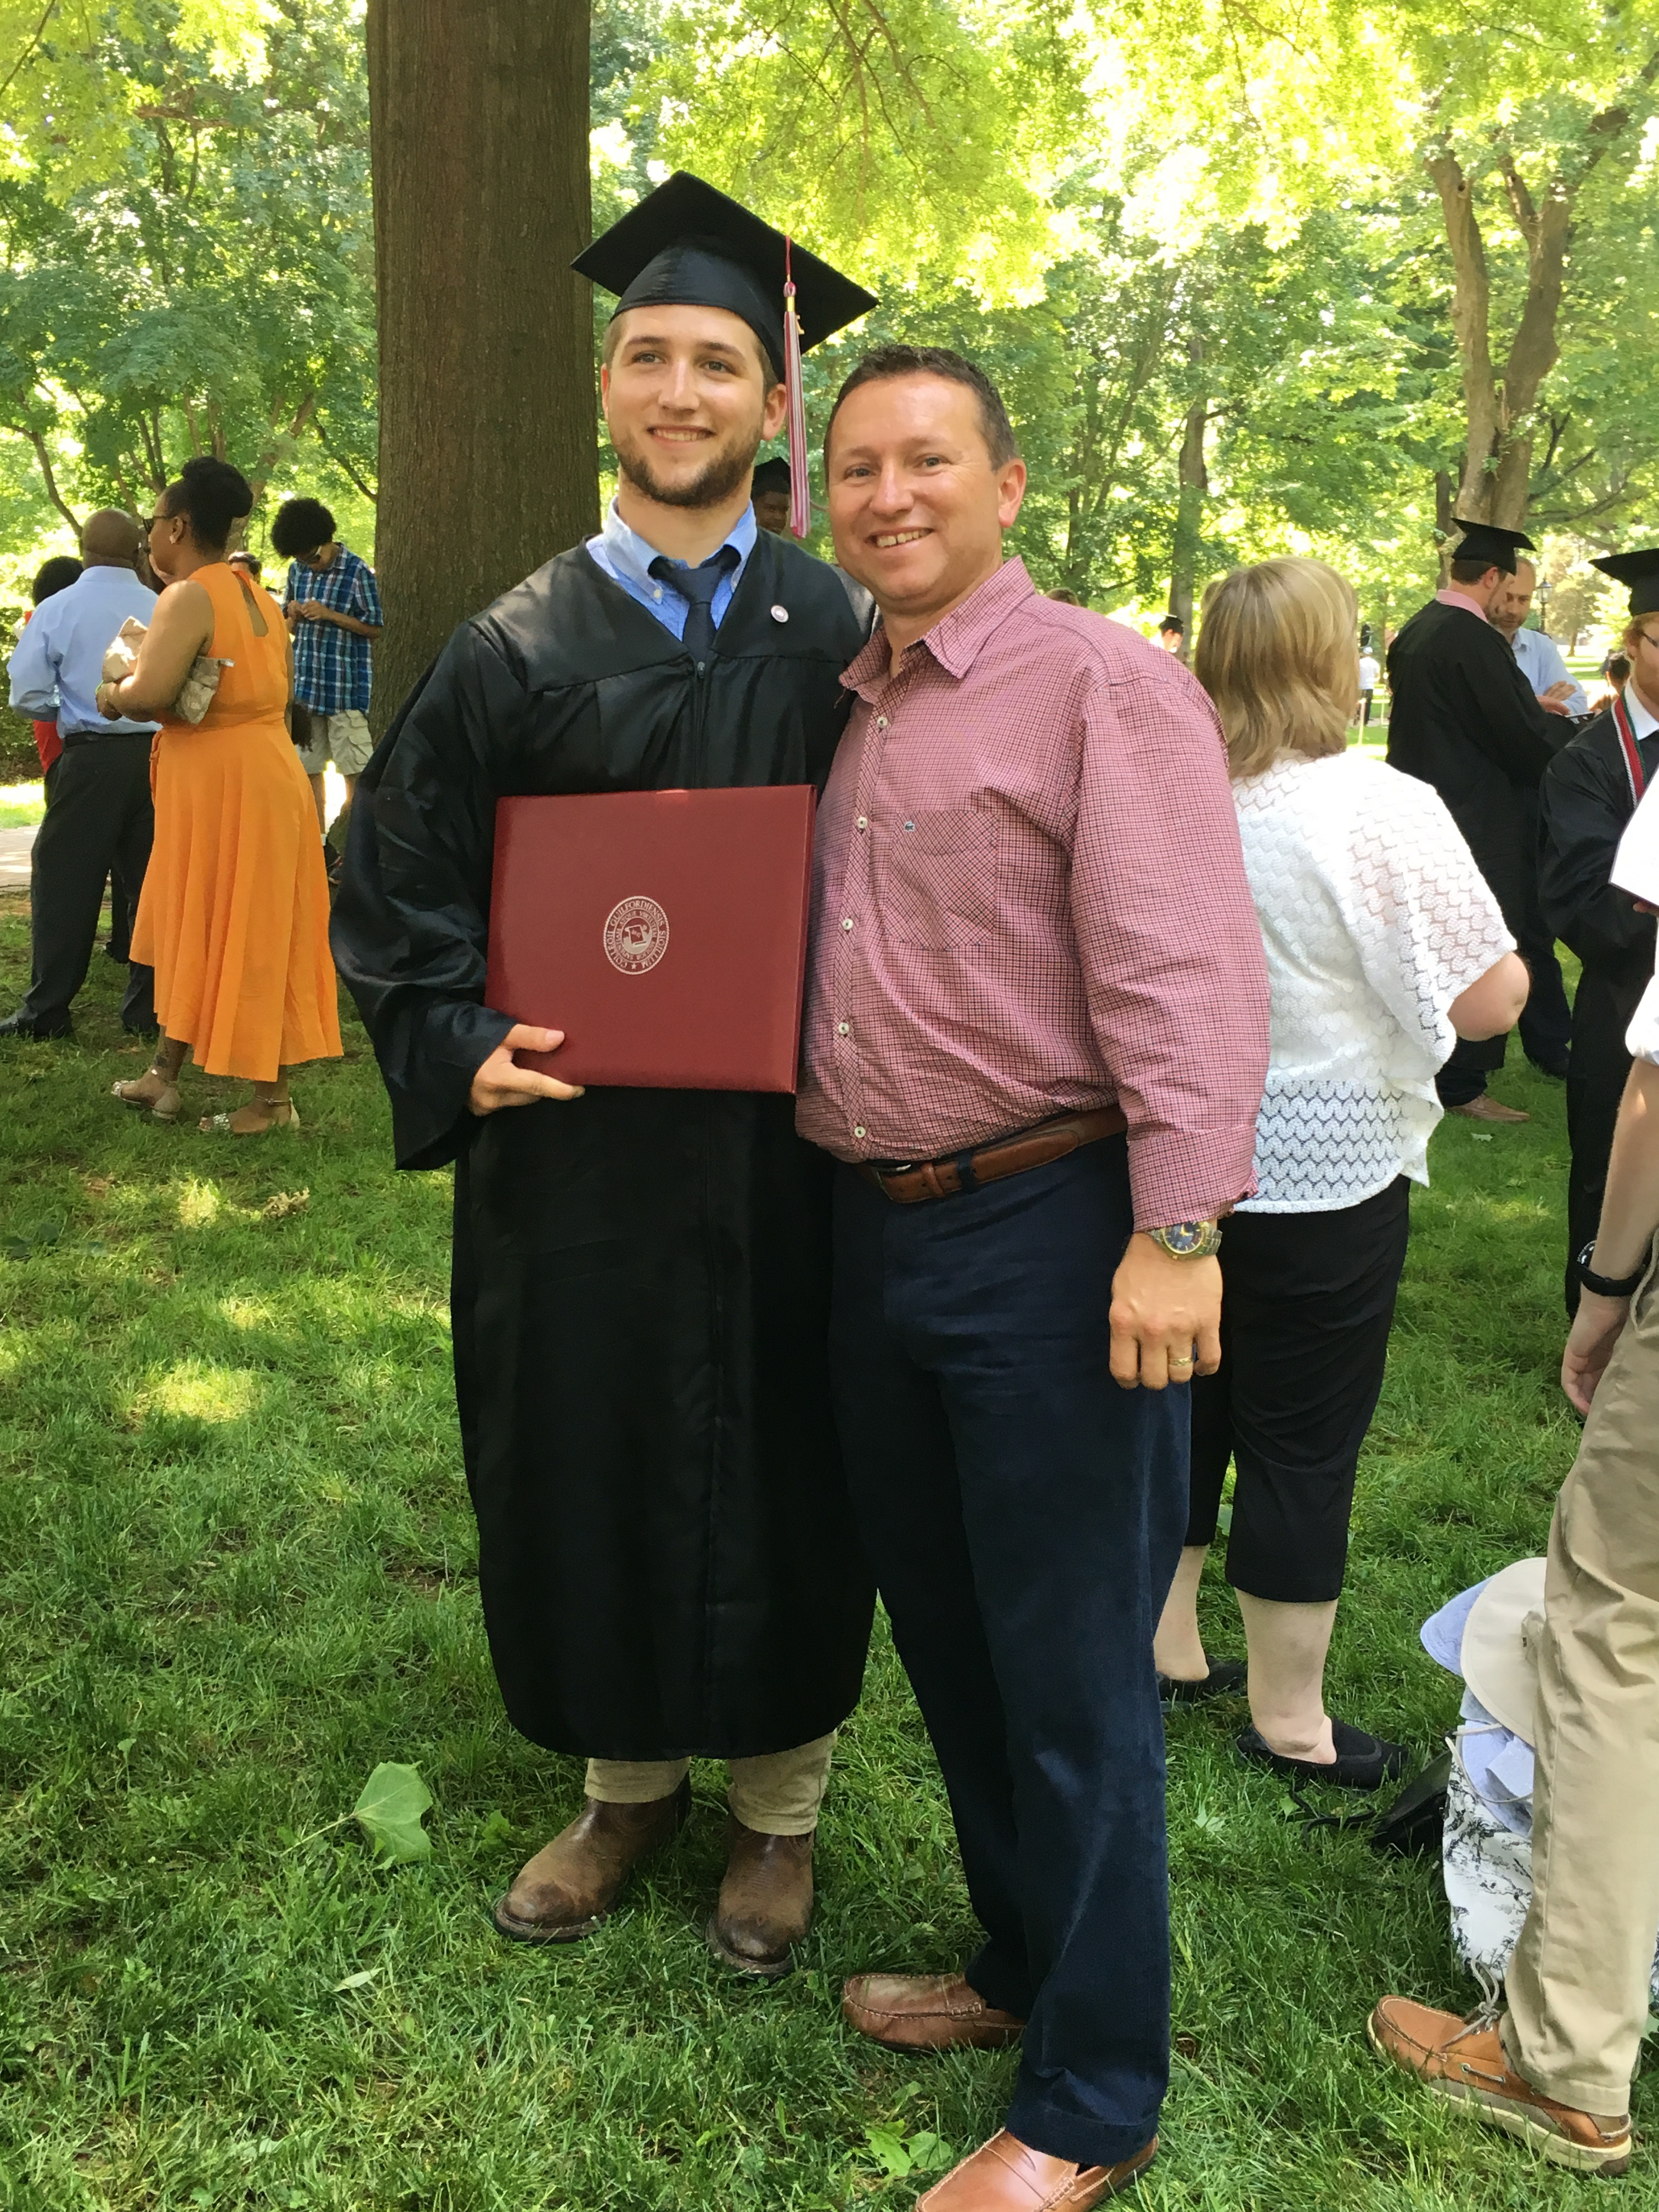 Proud papa with his graduate!